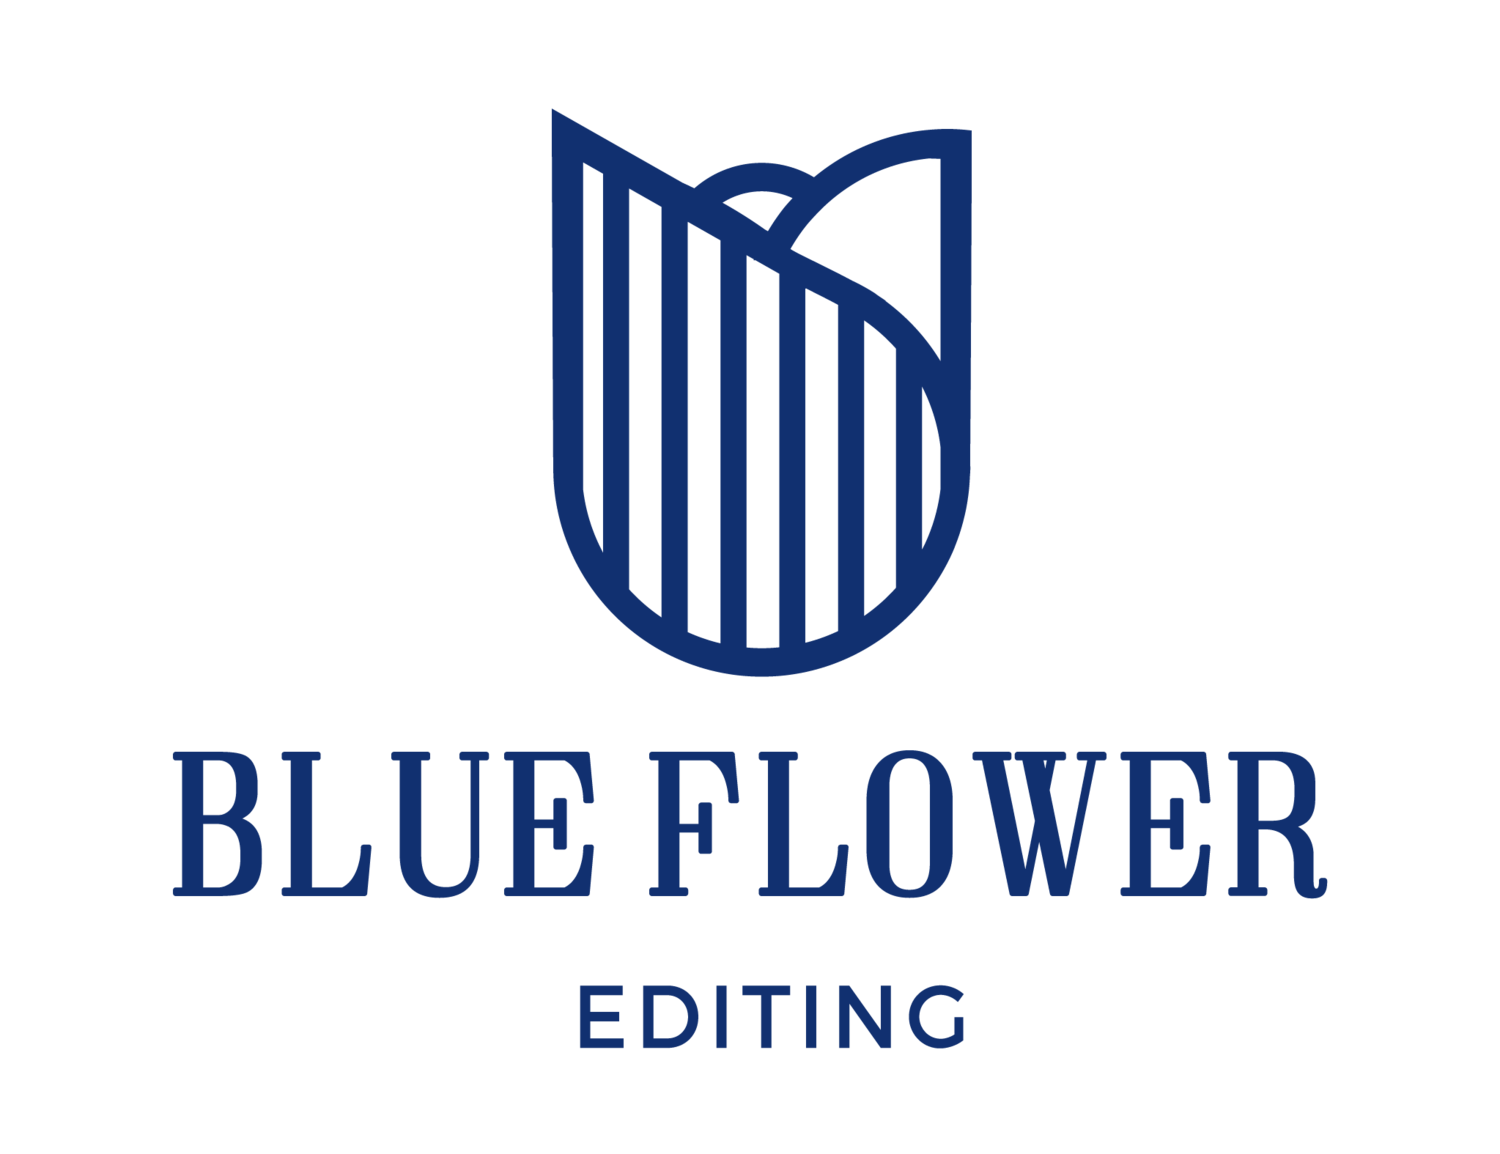 Blue Flower Editing